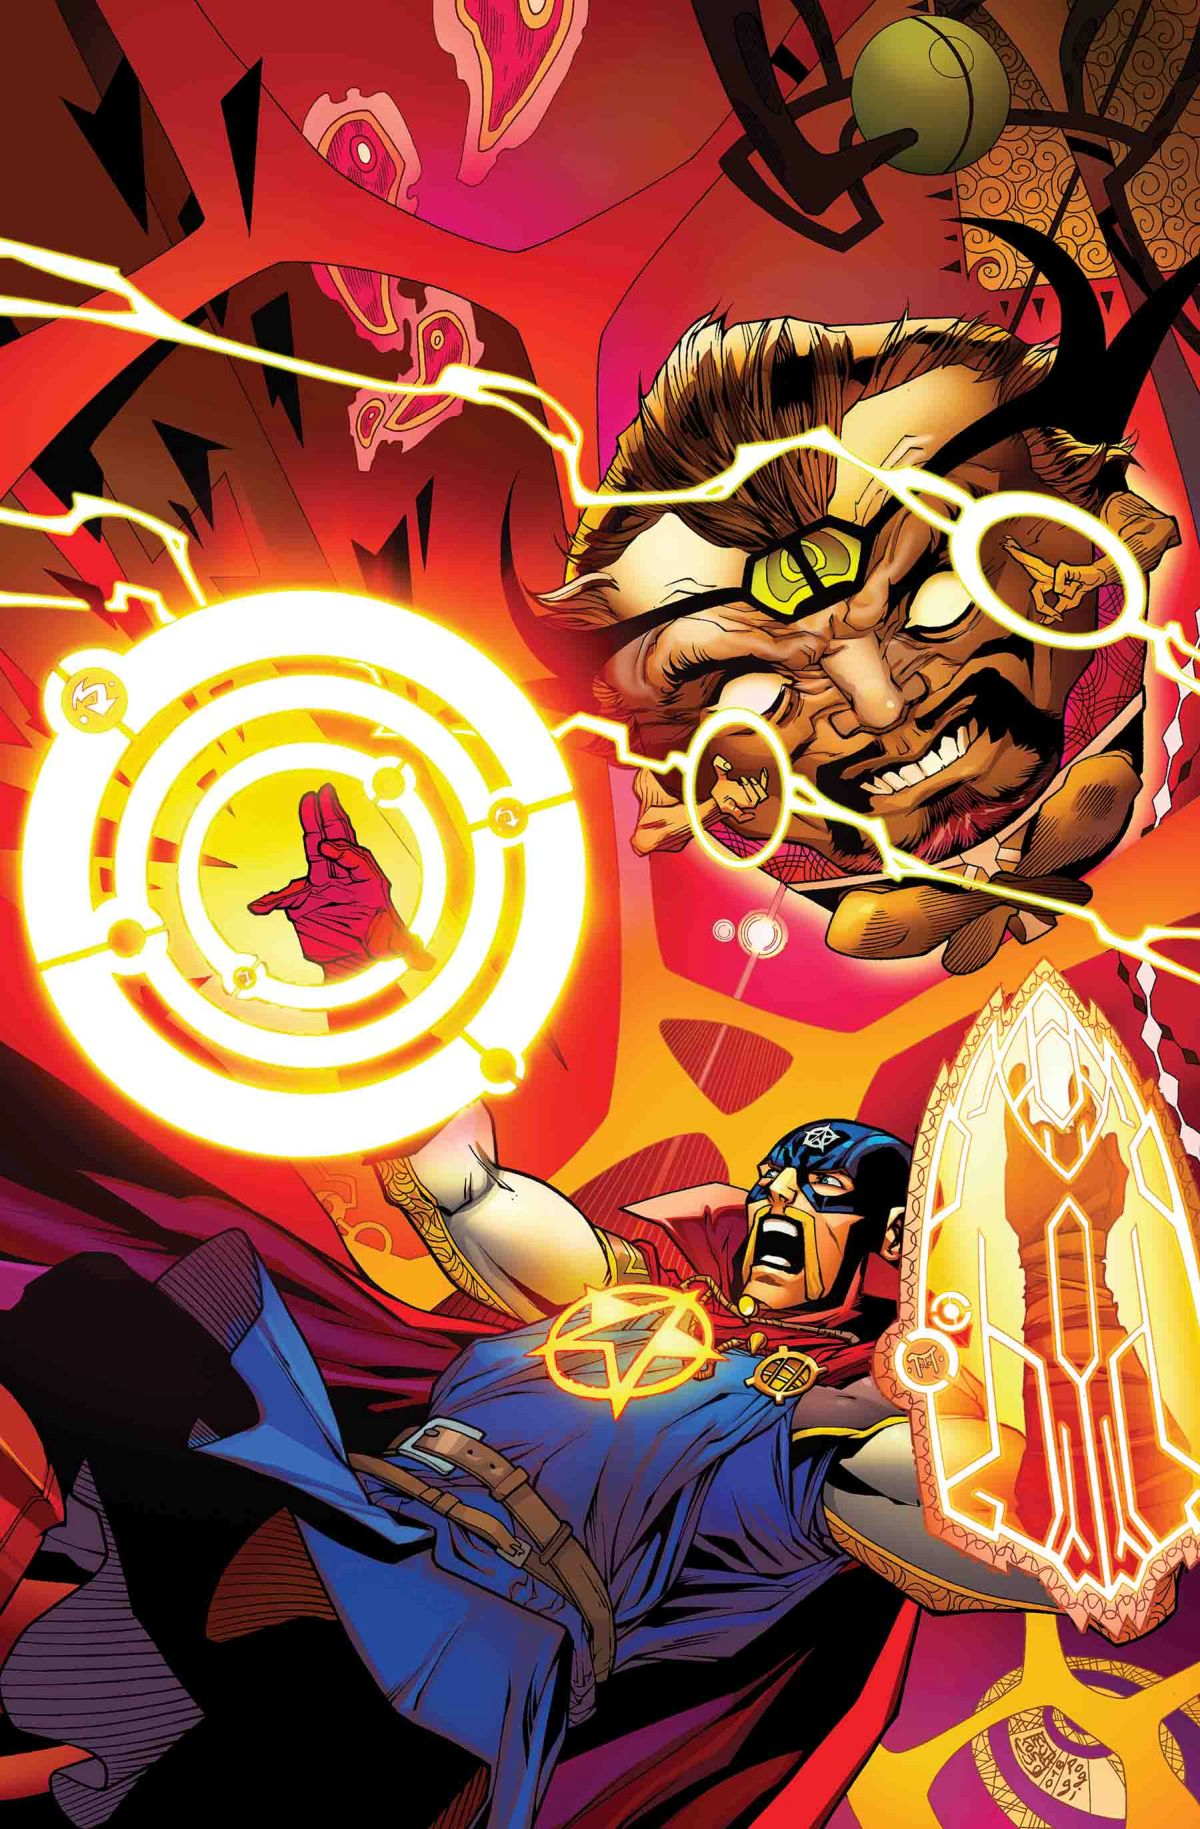 INFINITY WARS: SOLDIER SUPREME #2 (of 2)